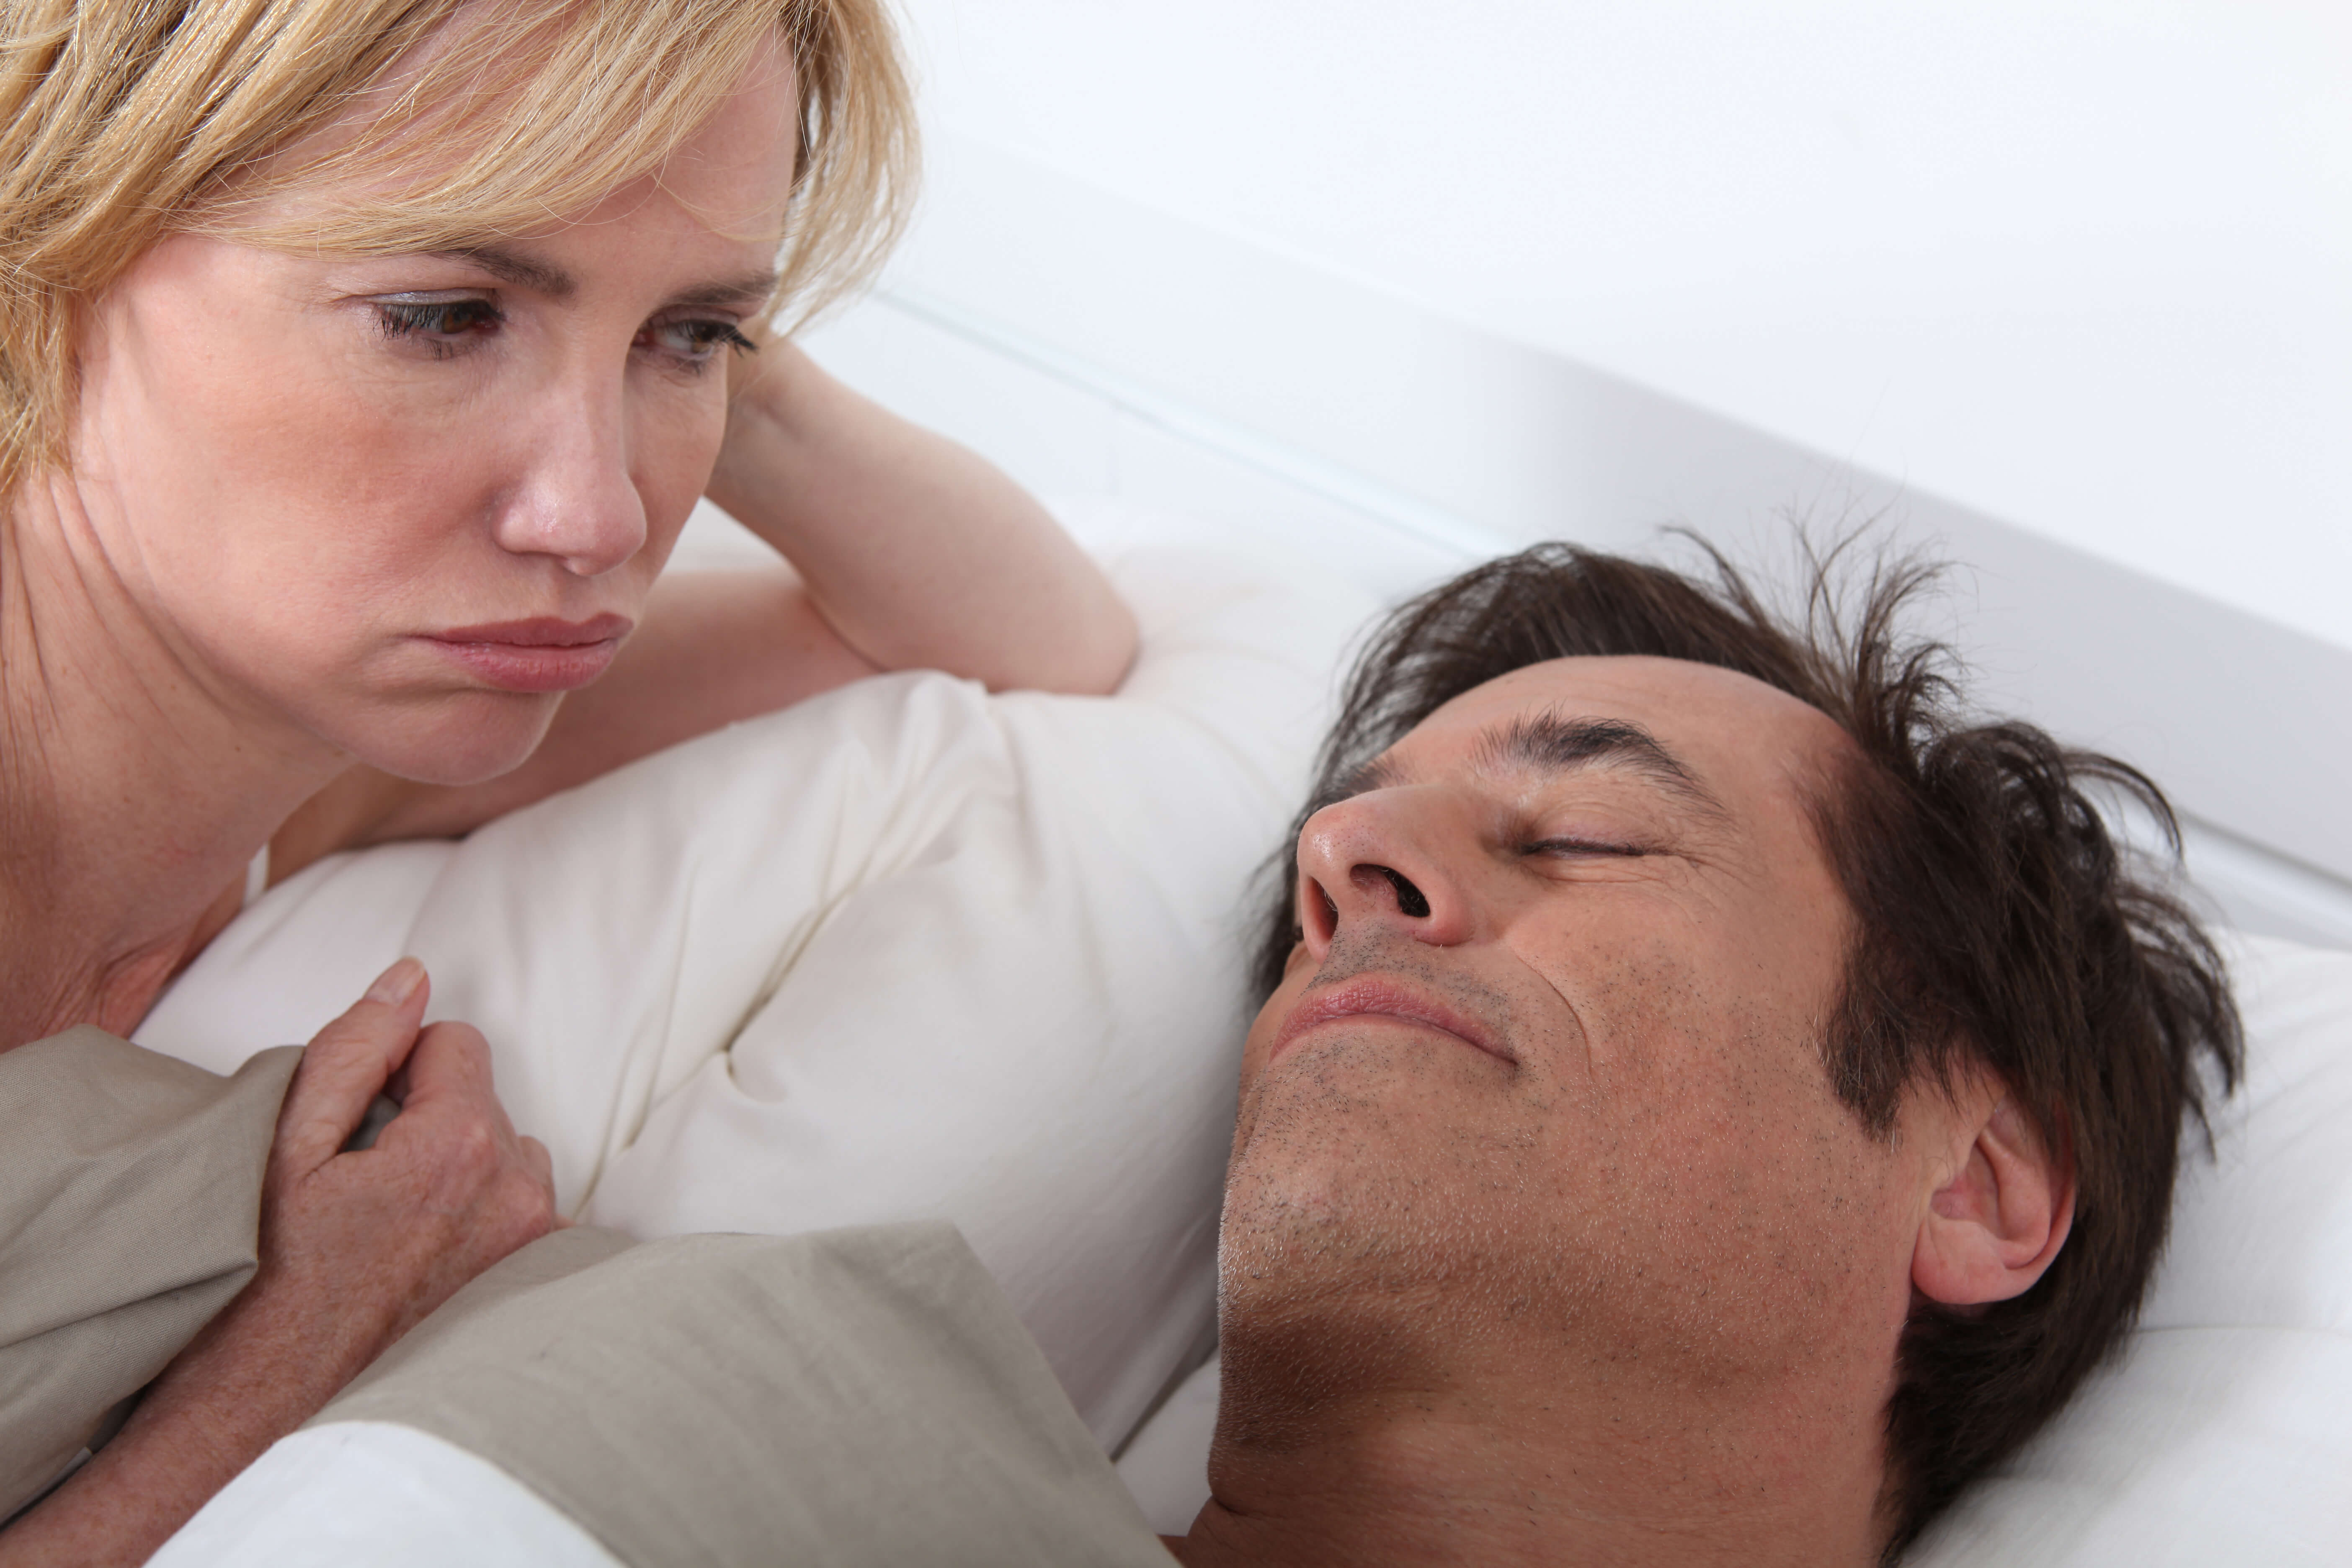 You are probably not a stud in bed, even though you think you are